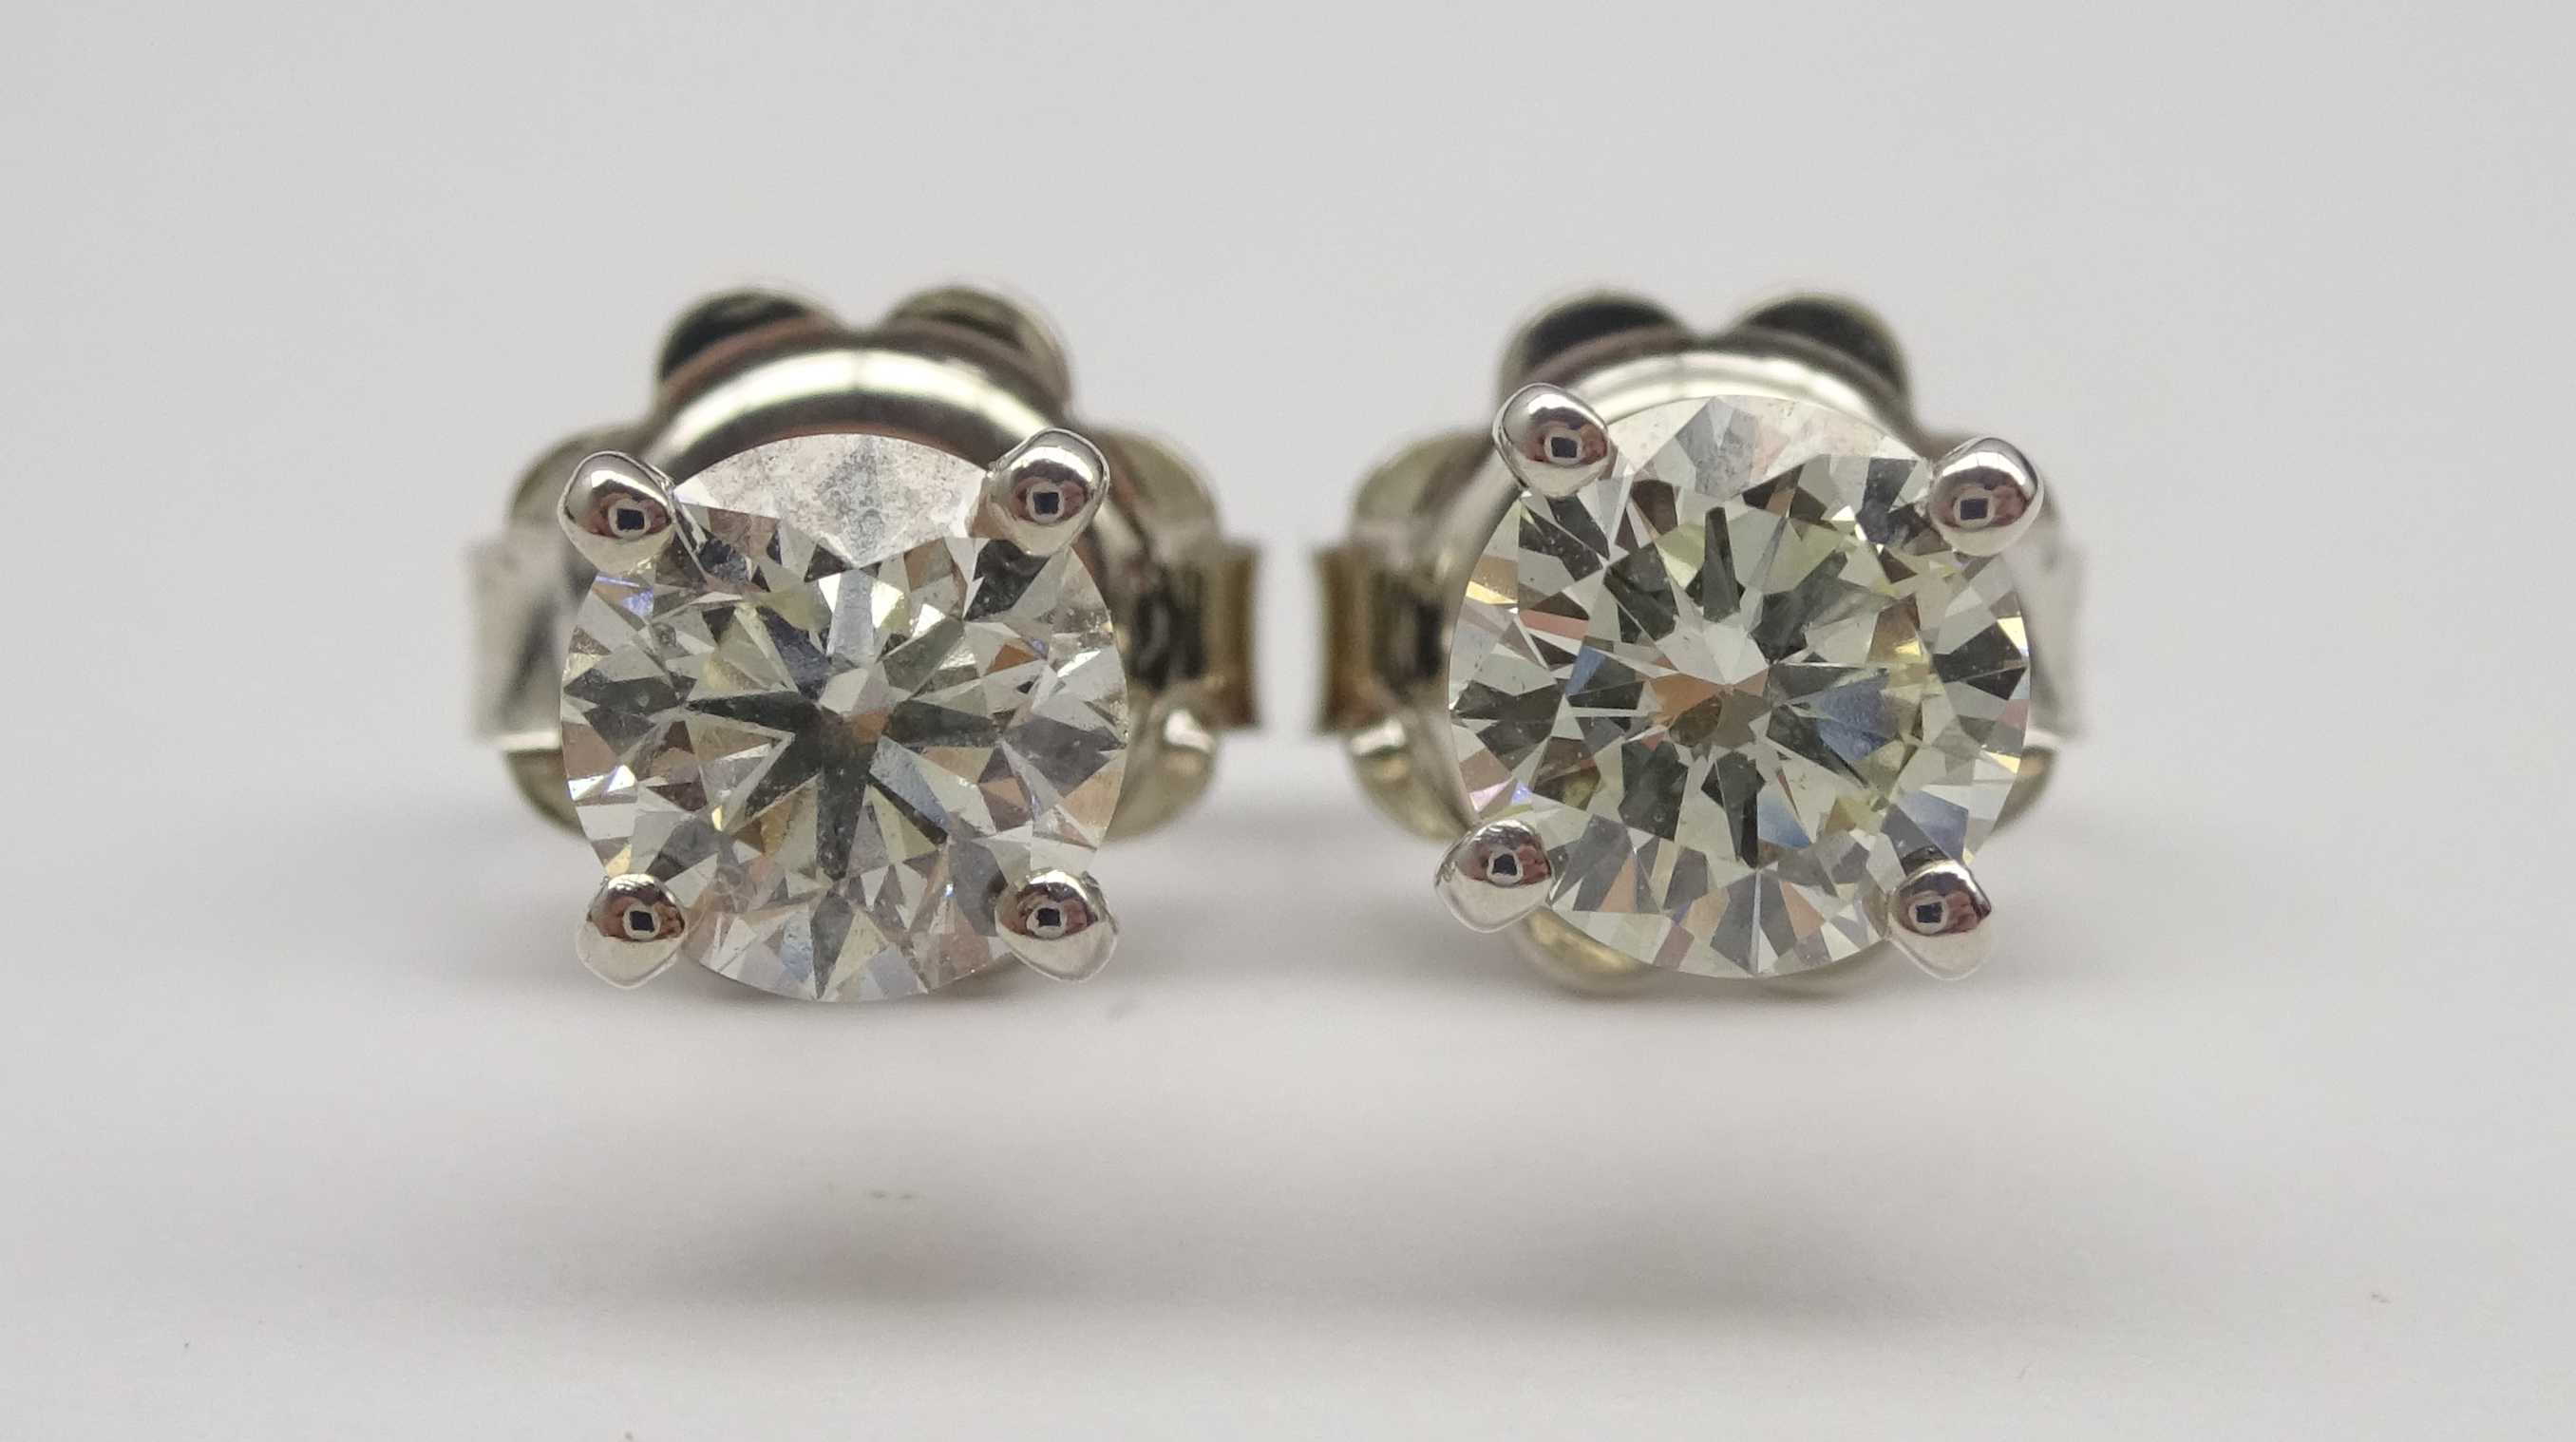 Lot 1022 - Pair of 18ct white gold, round brilliant cut diamond stud earrings, stamped 750,